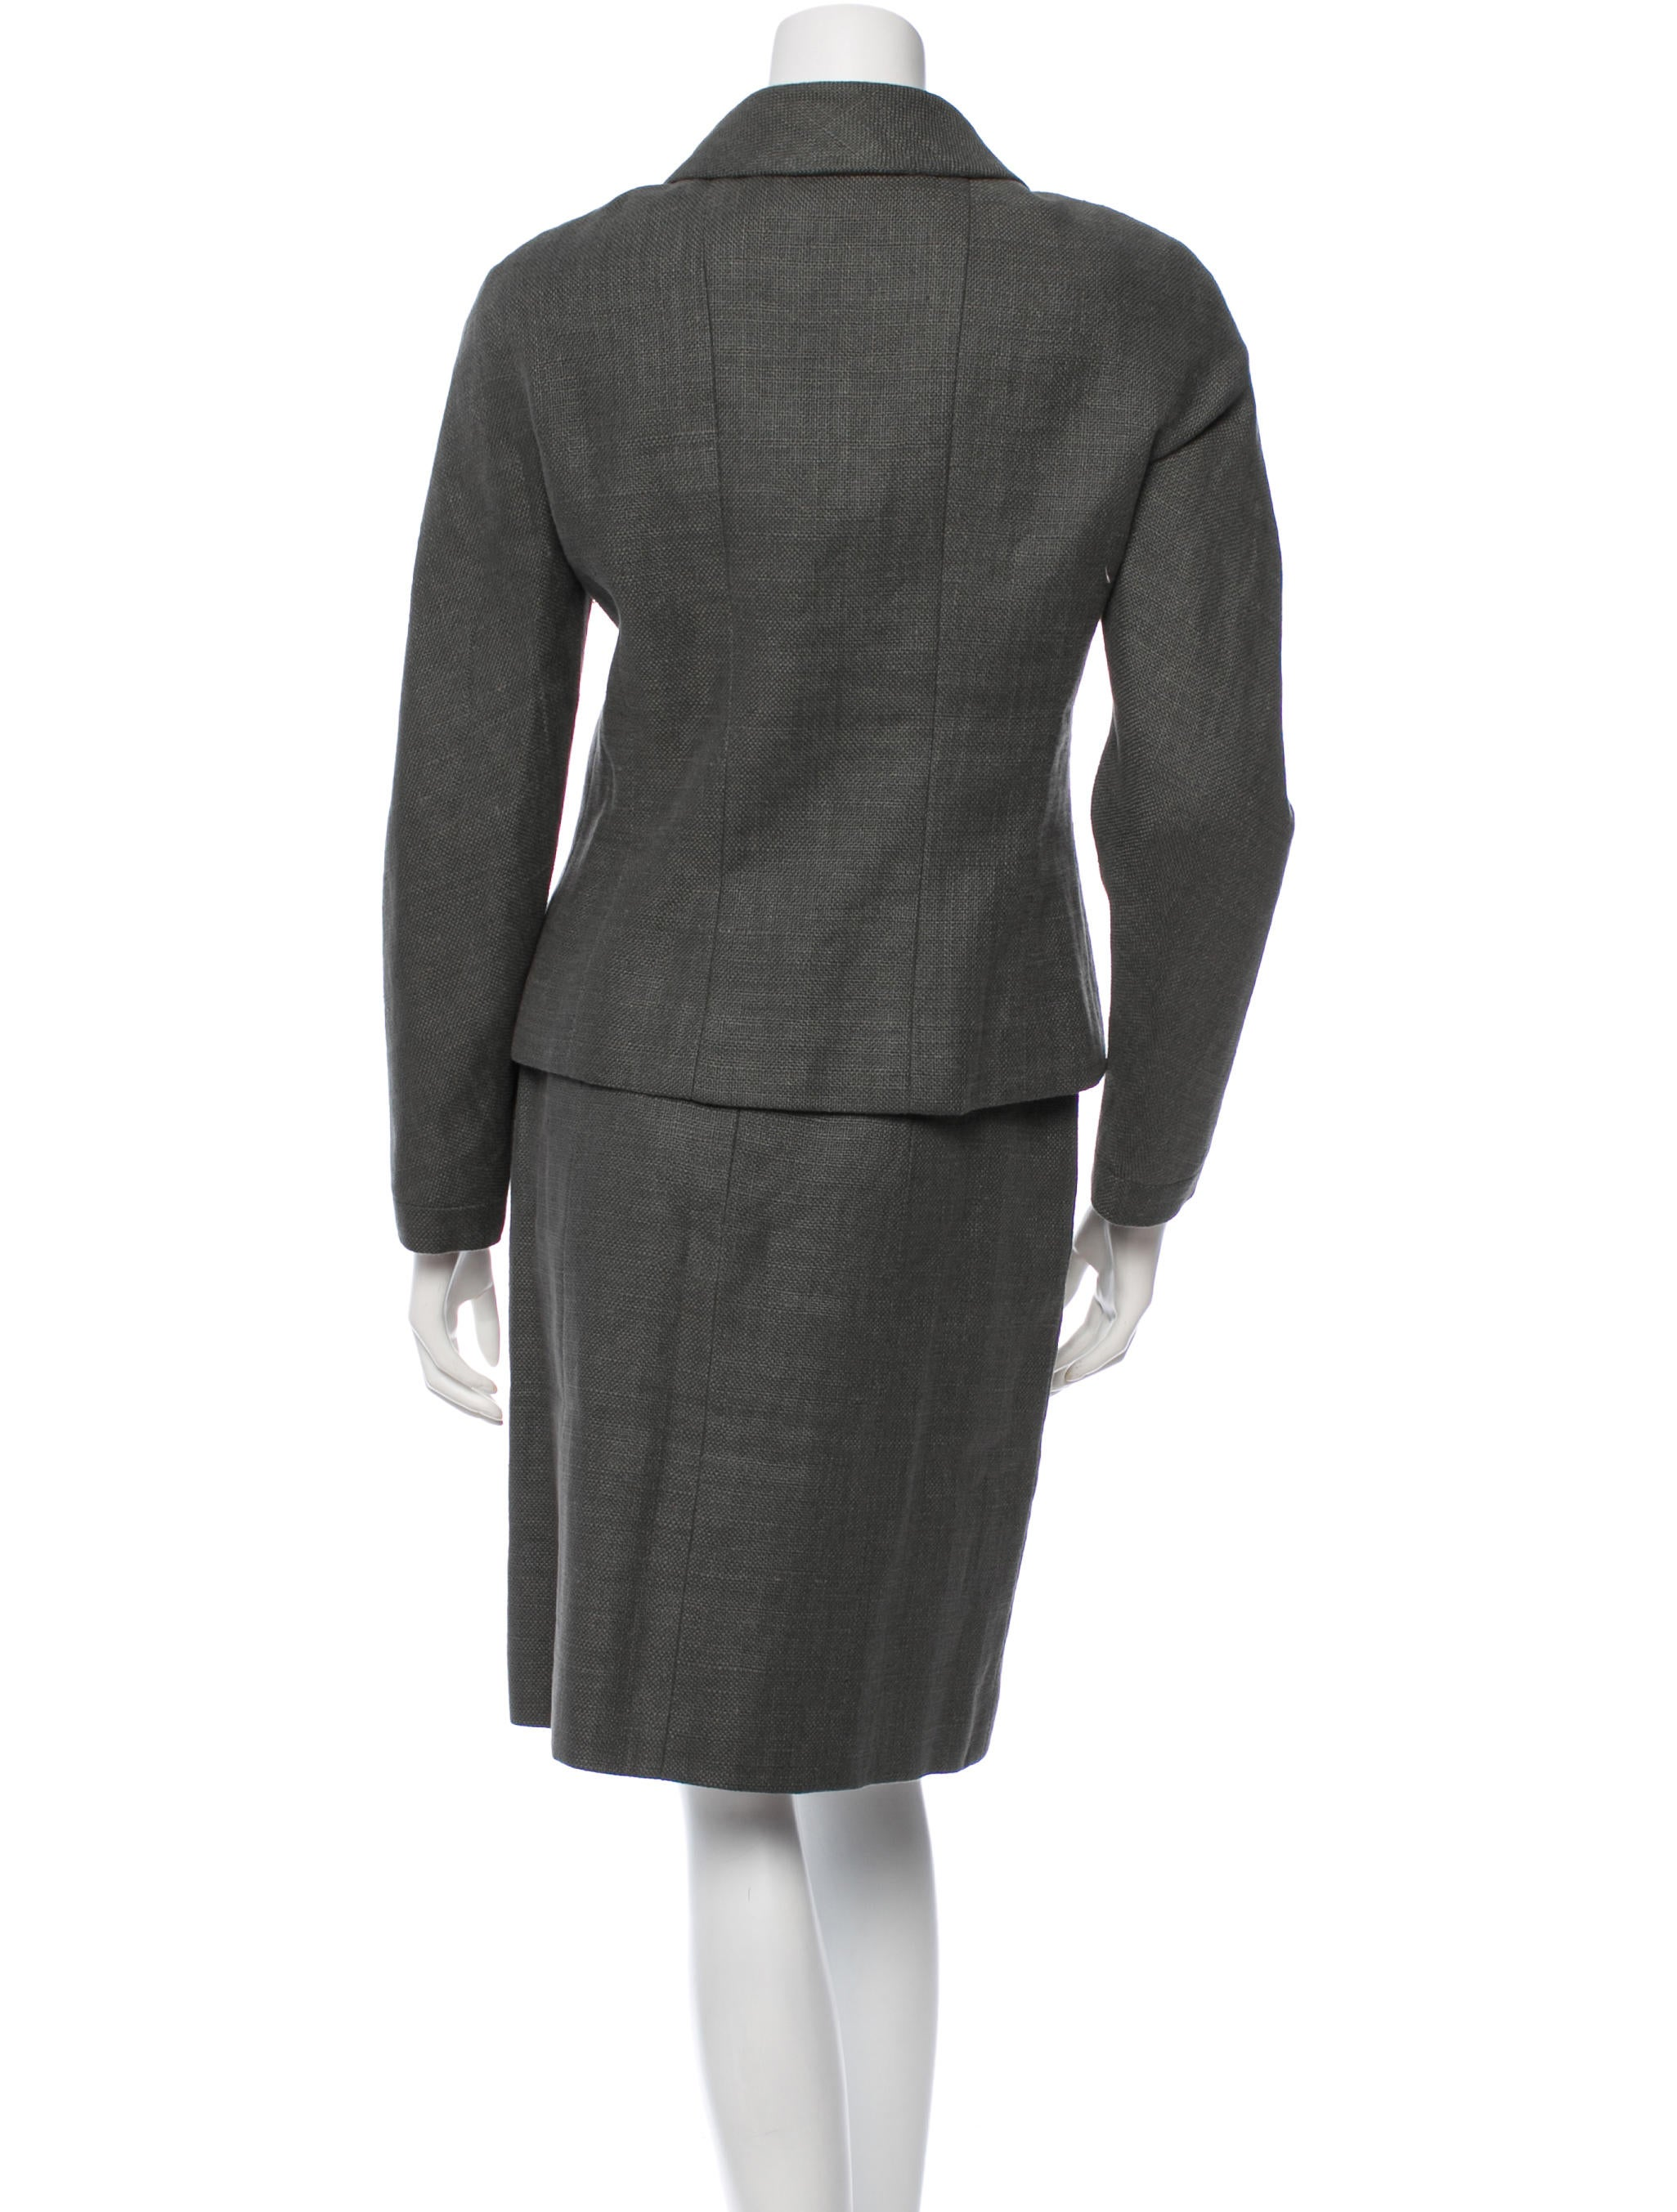 Our wide selection of skirts includes A-line skirts, pencil skirts, denim skirts and more, in long, mid-length and short styles. Our women's suits and suiting separates include blazers, dresses and skirts with endless mix-and-match possibilities to help you take your career wardrobe to new heights.